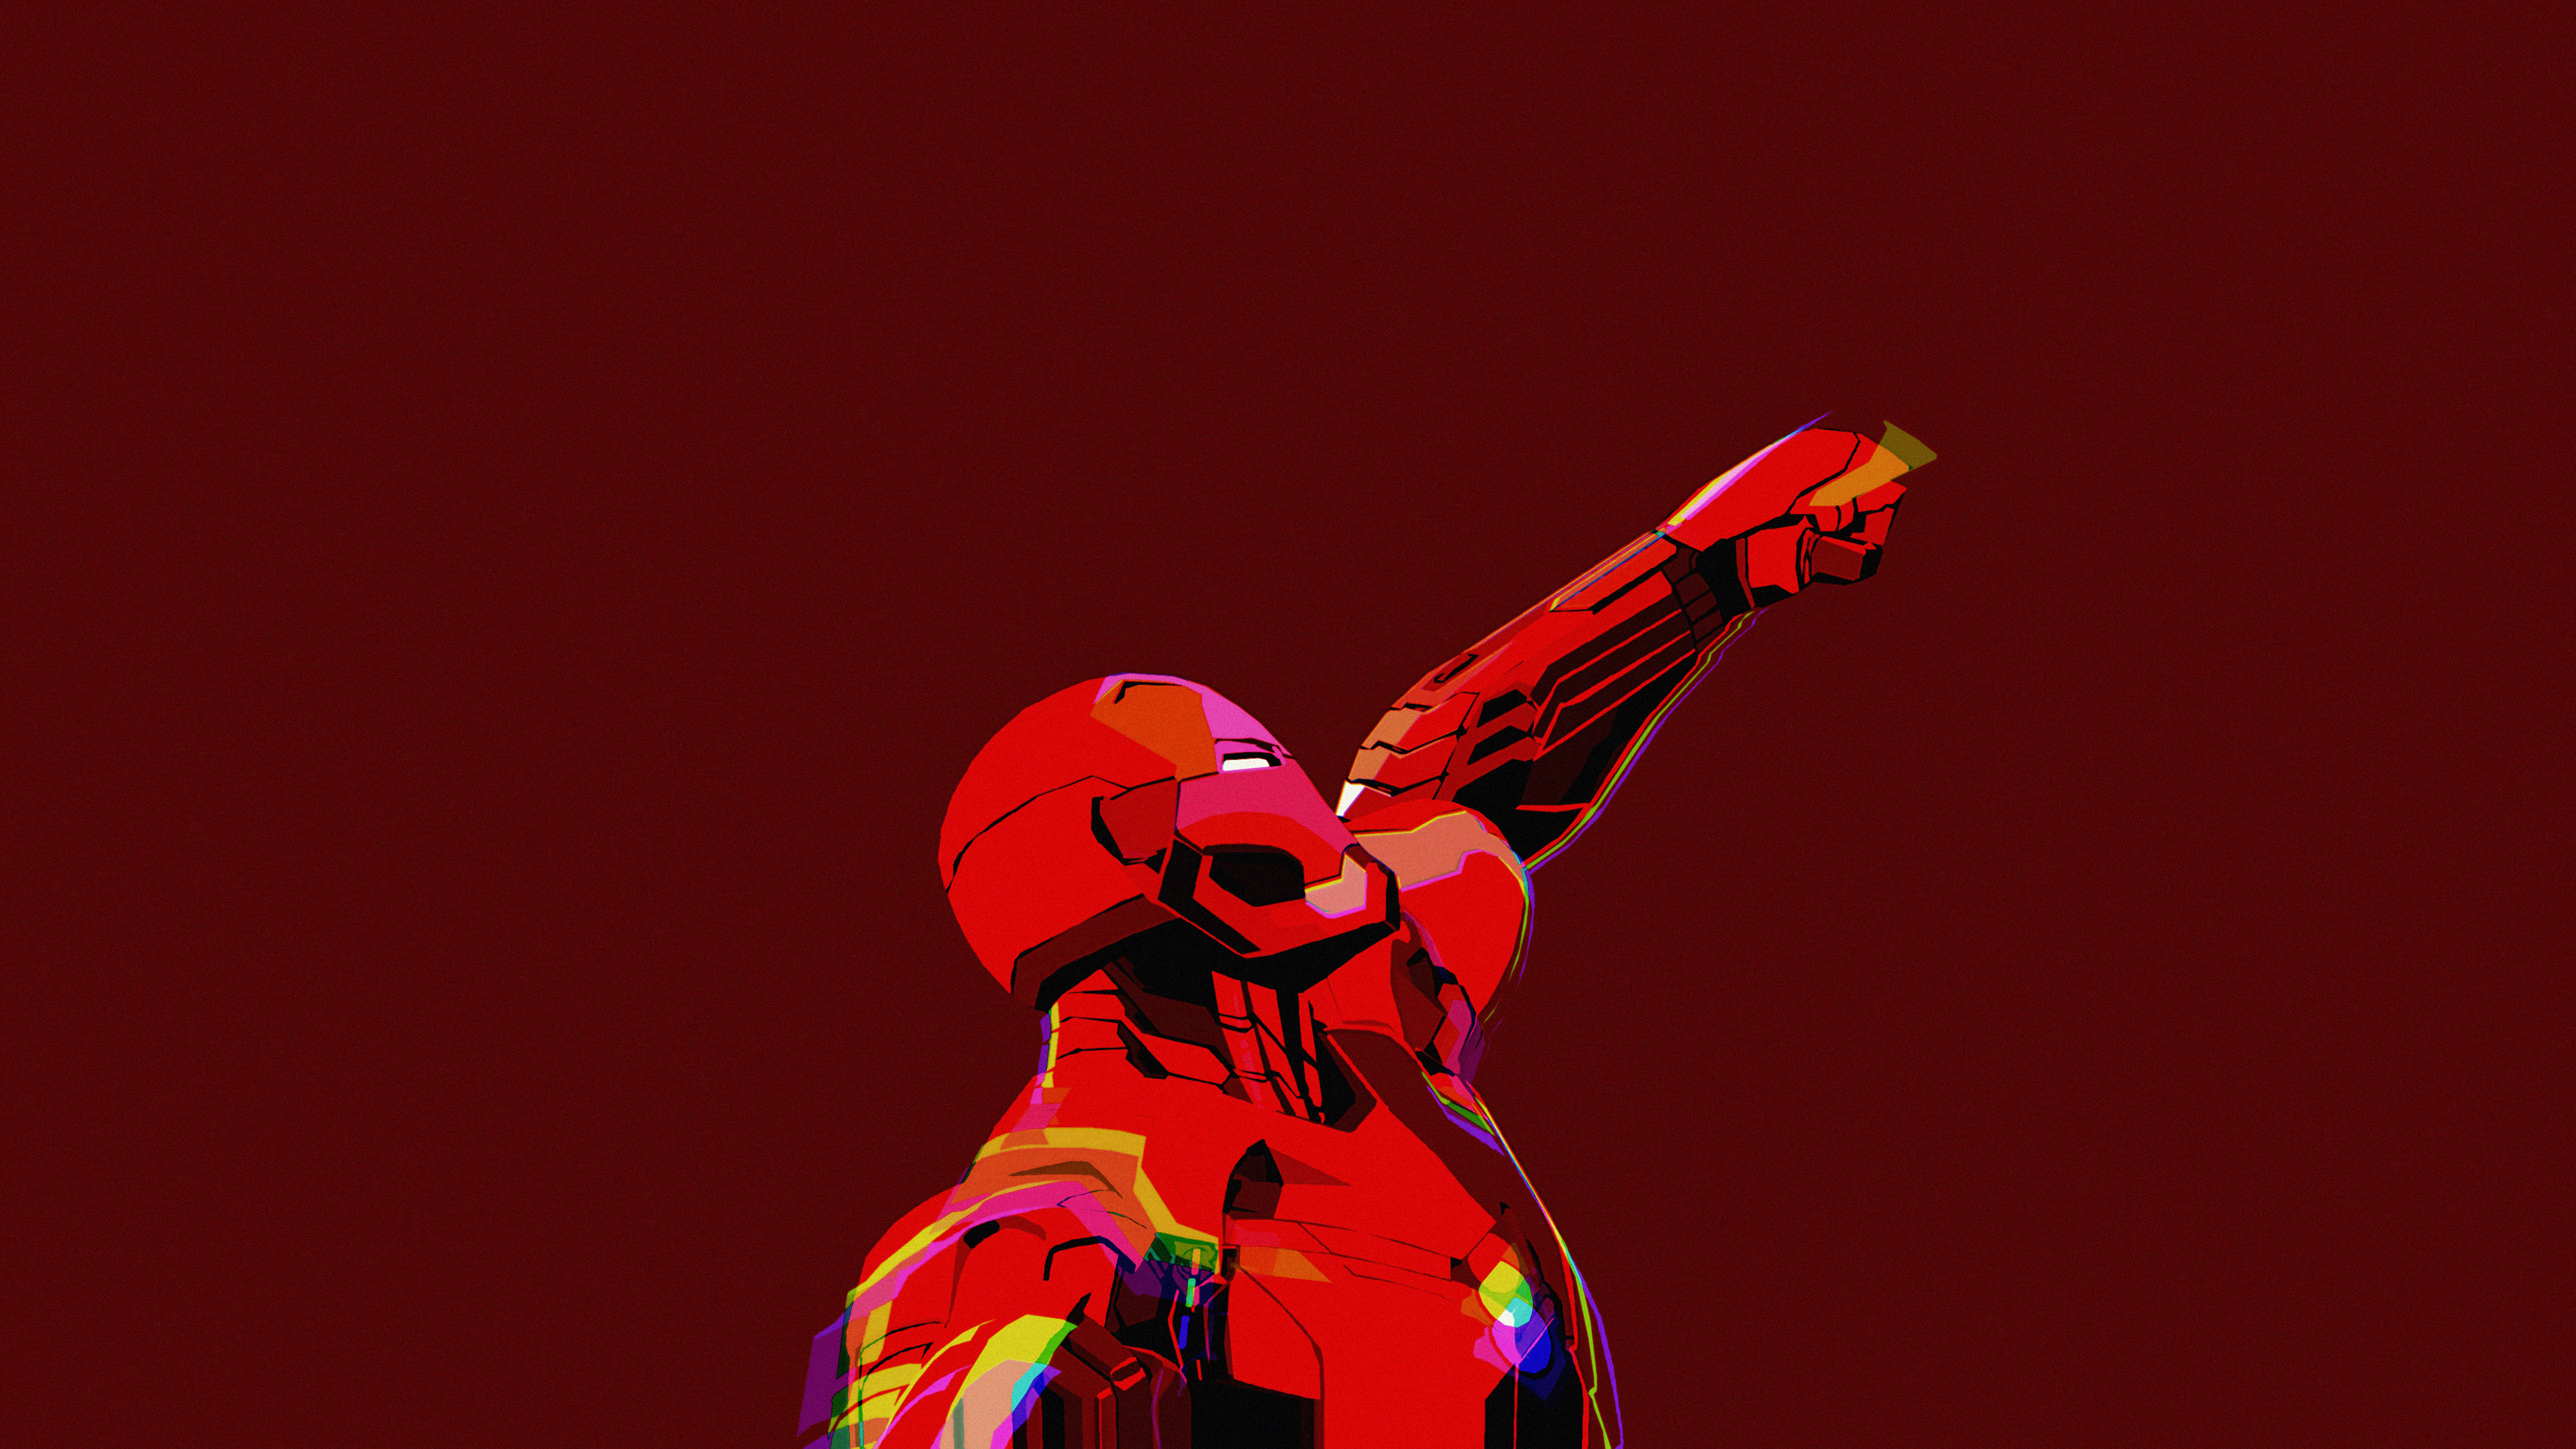 iron man clean minimal art 1569187079 - Iron Man Clean Minimal Art - superheroes wallpapers, minimalist wallpapers, minimalism wallpapers, iron man wallpapers, hd-wallpapers, digital art wallpapers, artwork wallpapers, artist wallpapers, 4k-wallpapers